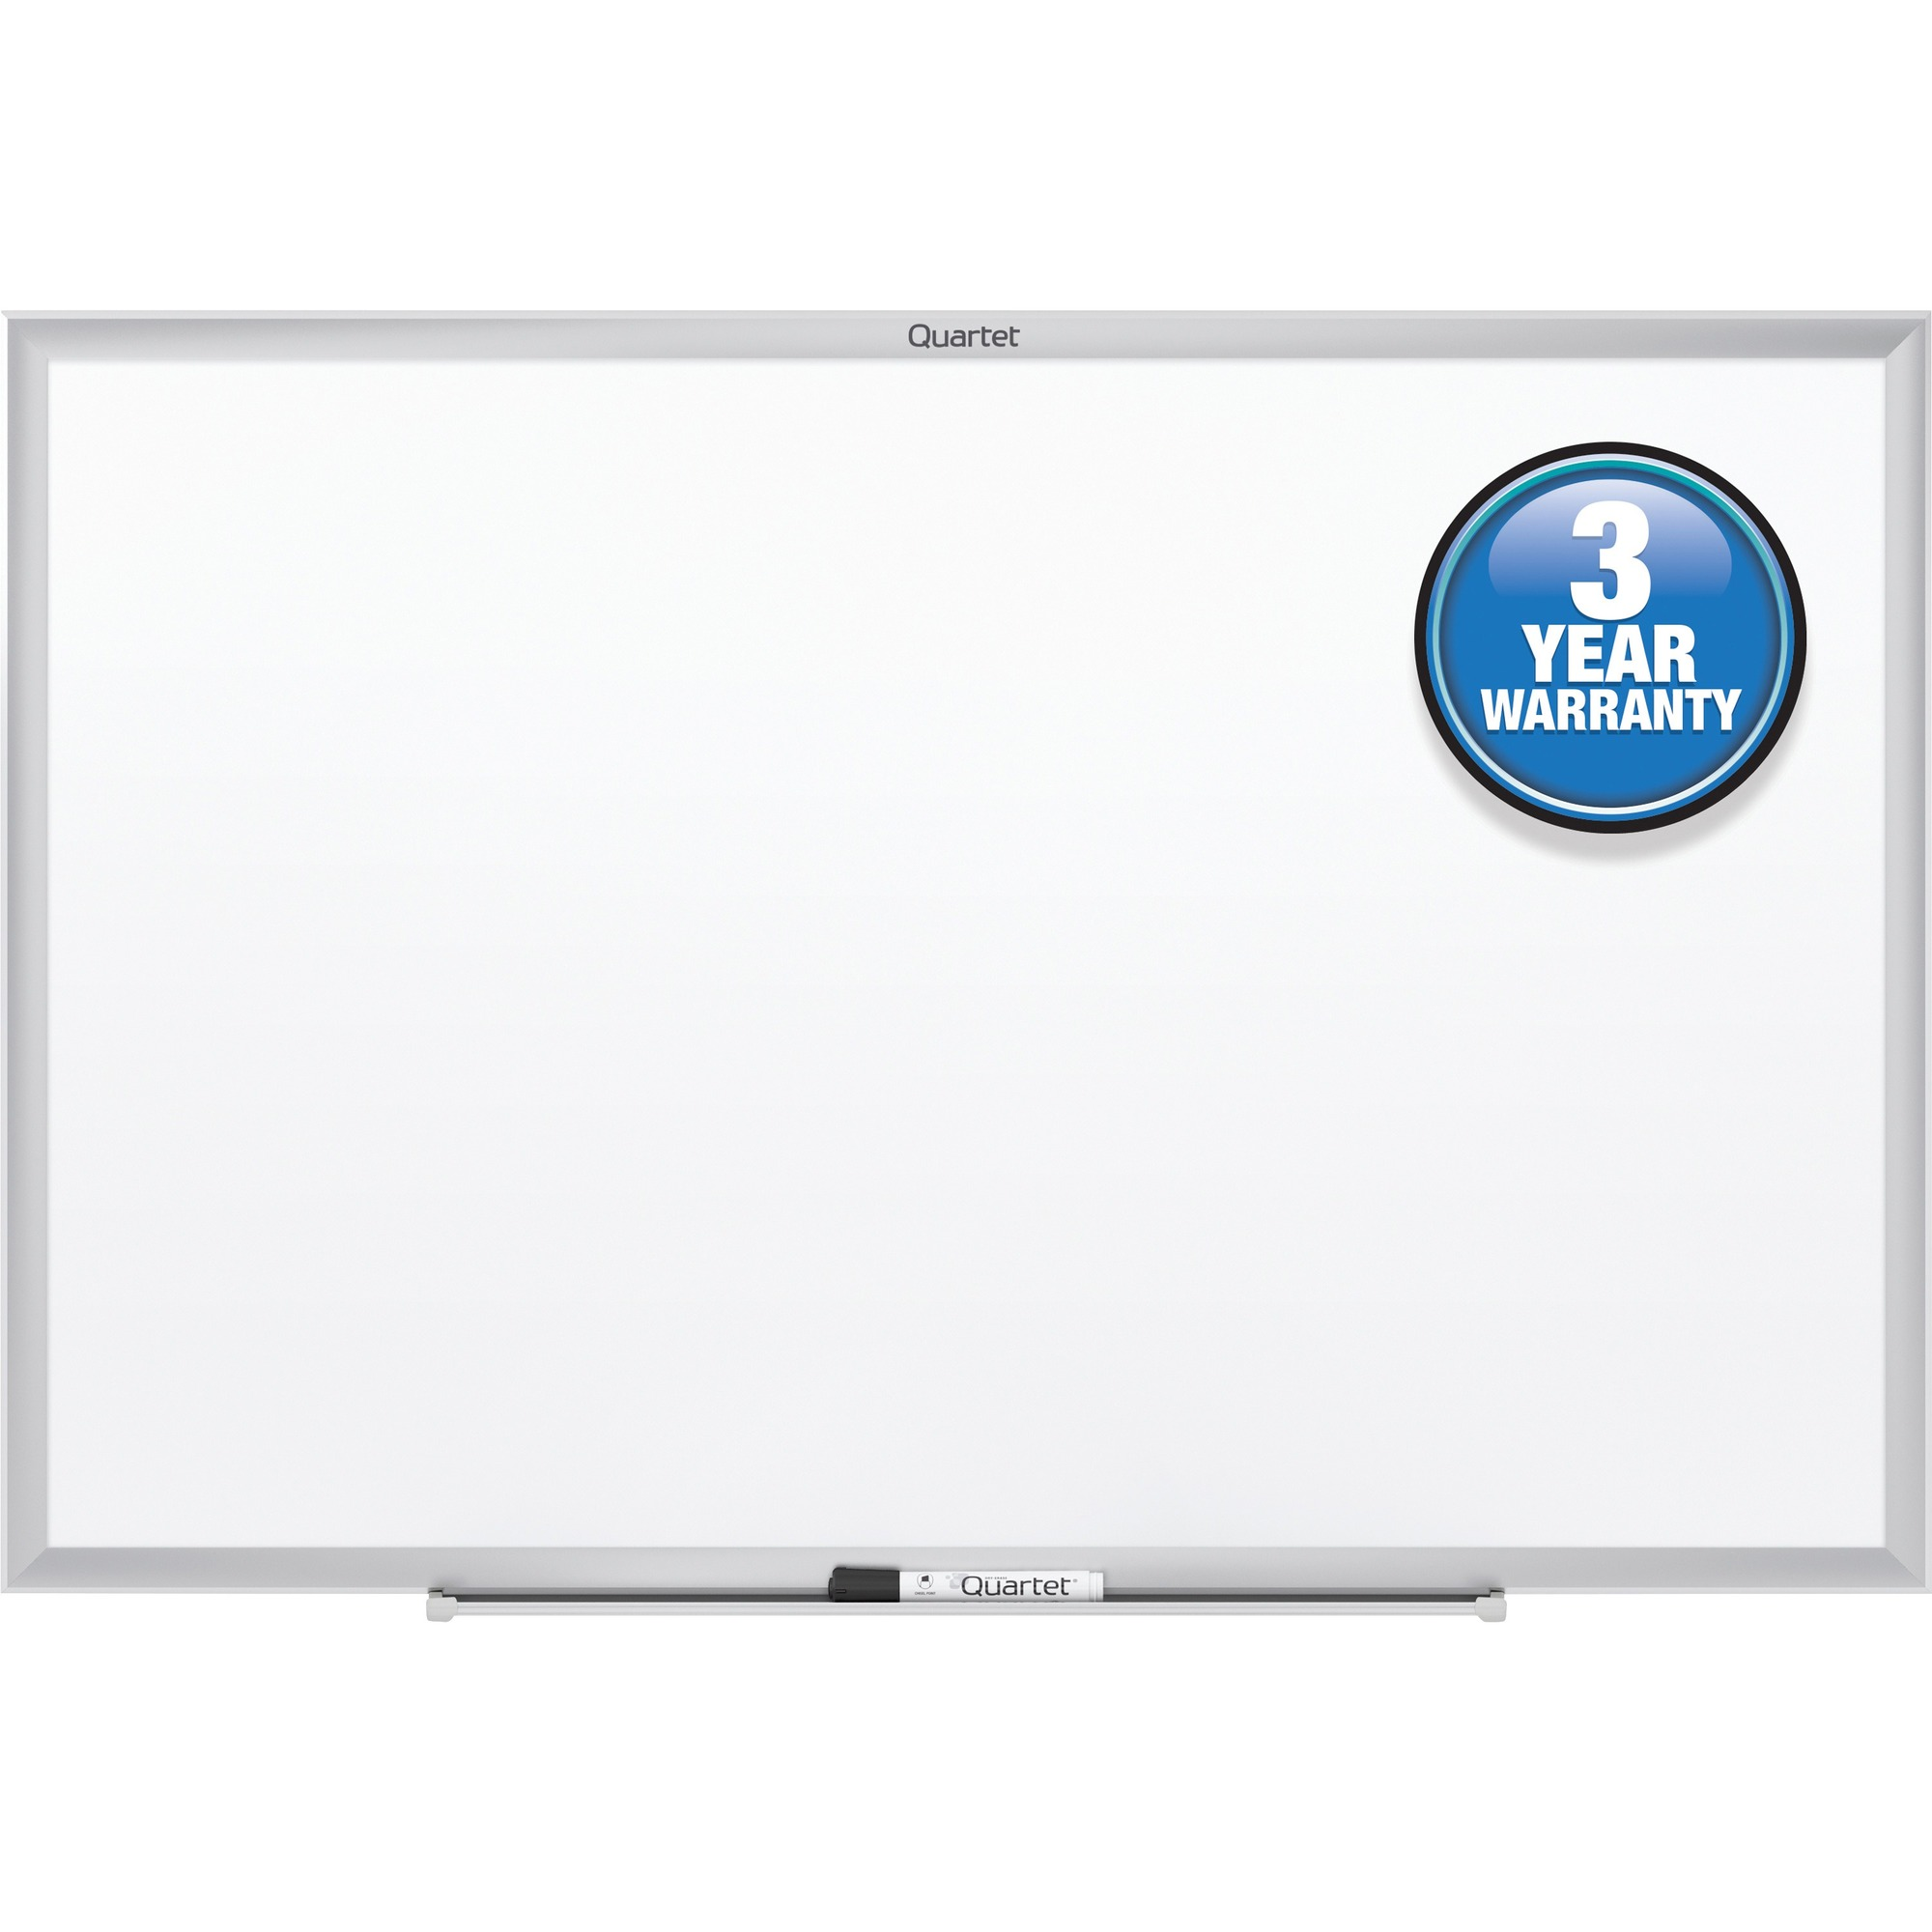 Acco Brands Corporation Quartet® Classic Whiteboard - 72 (6 Ft) Width X 48 (4 Ft) Height - White Melamine Surface - Silver Aluminum Frame - Horizontal/vertical - 1 Each - Taa Compliant